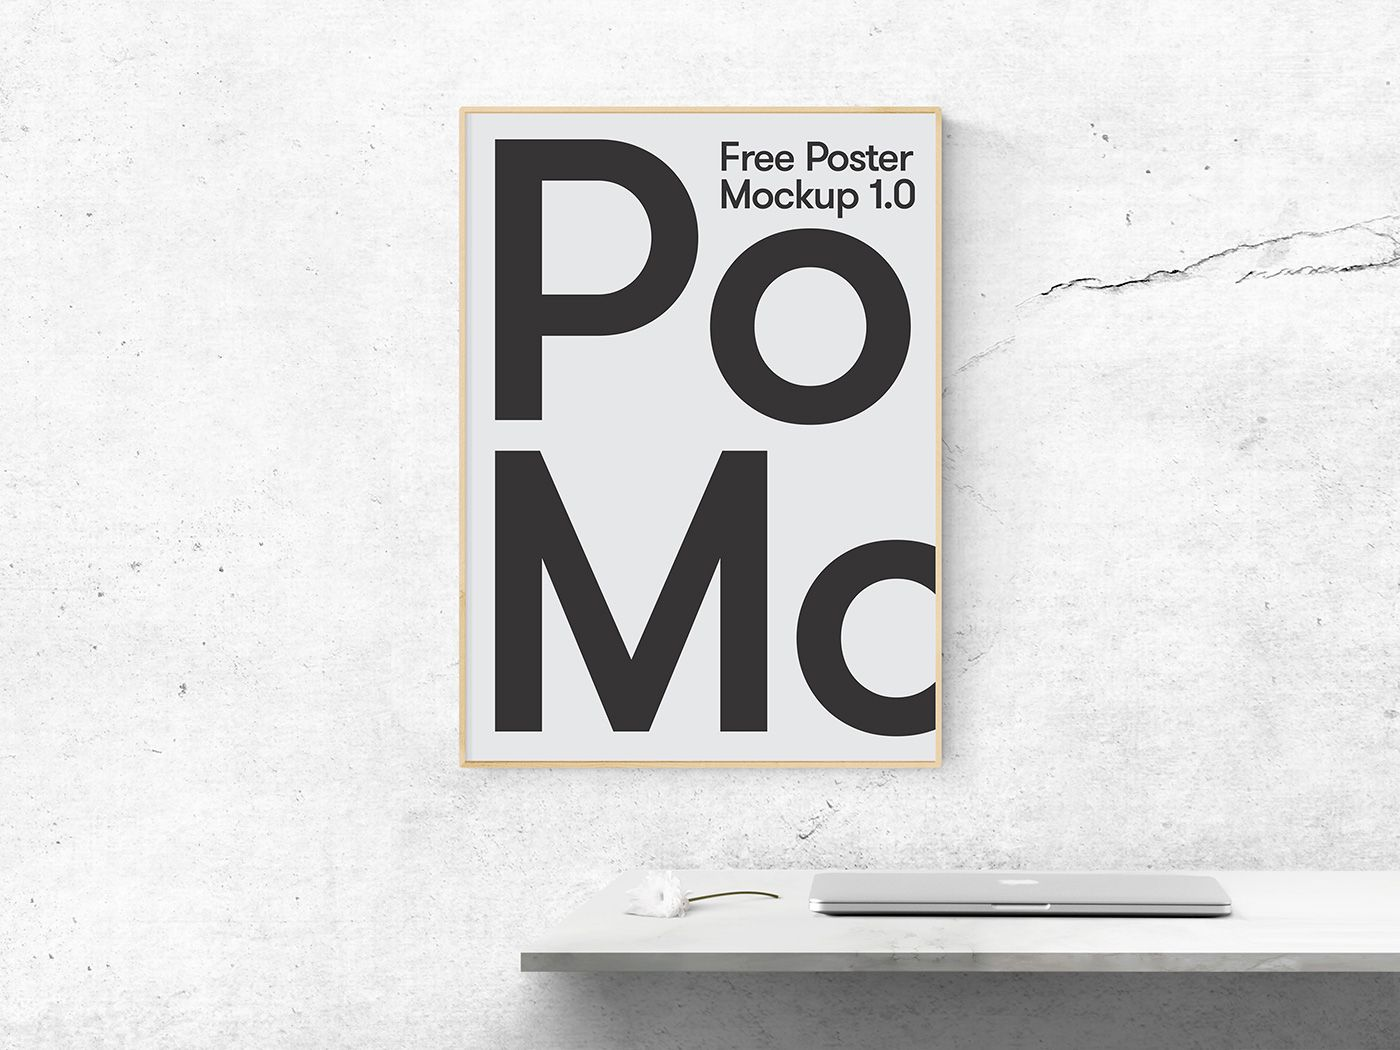 A Clean Psd Free Mock Up In Indoor Scene With A Poster Frame Poster Mockup Poster Mockup Psd Poster Mockup Free